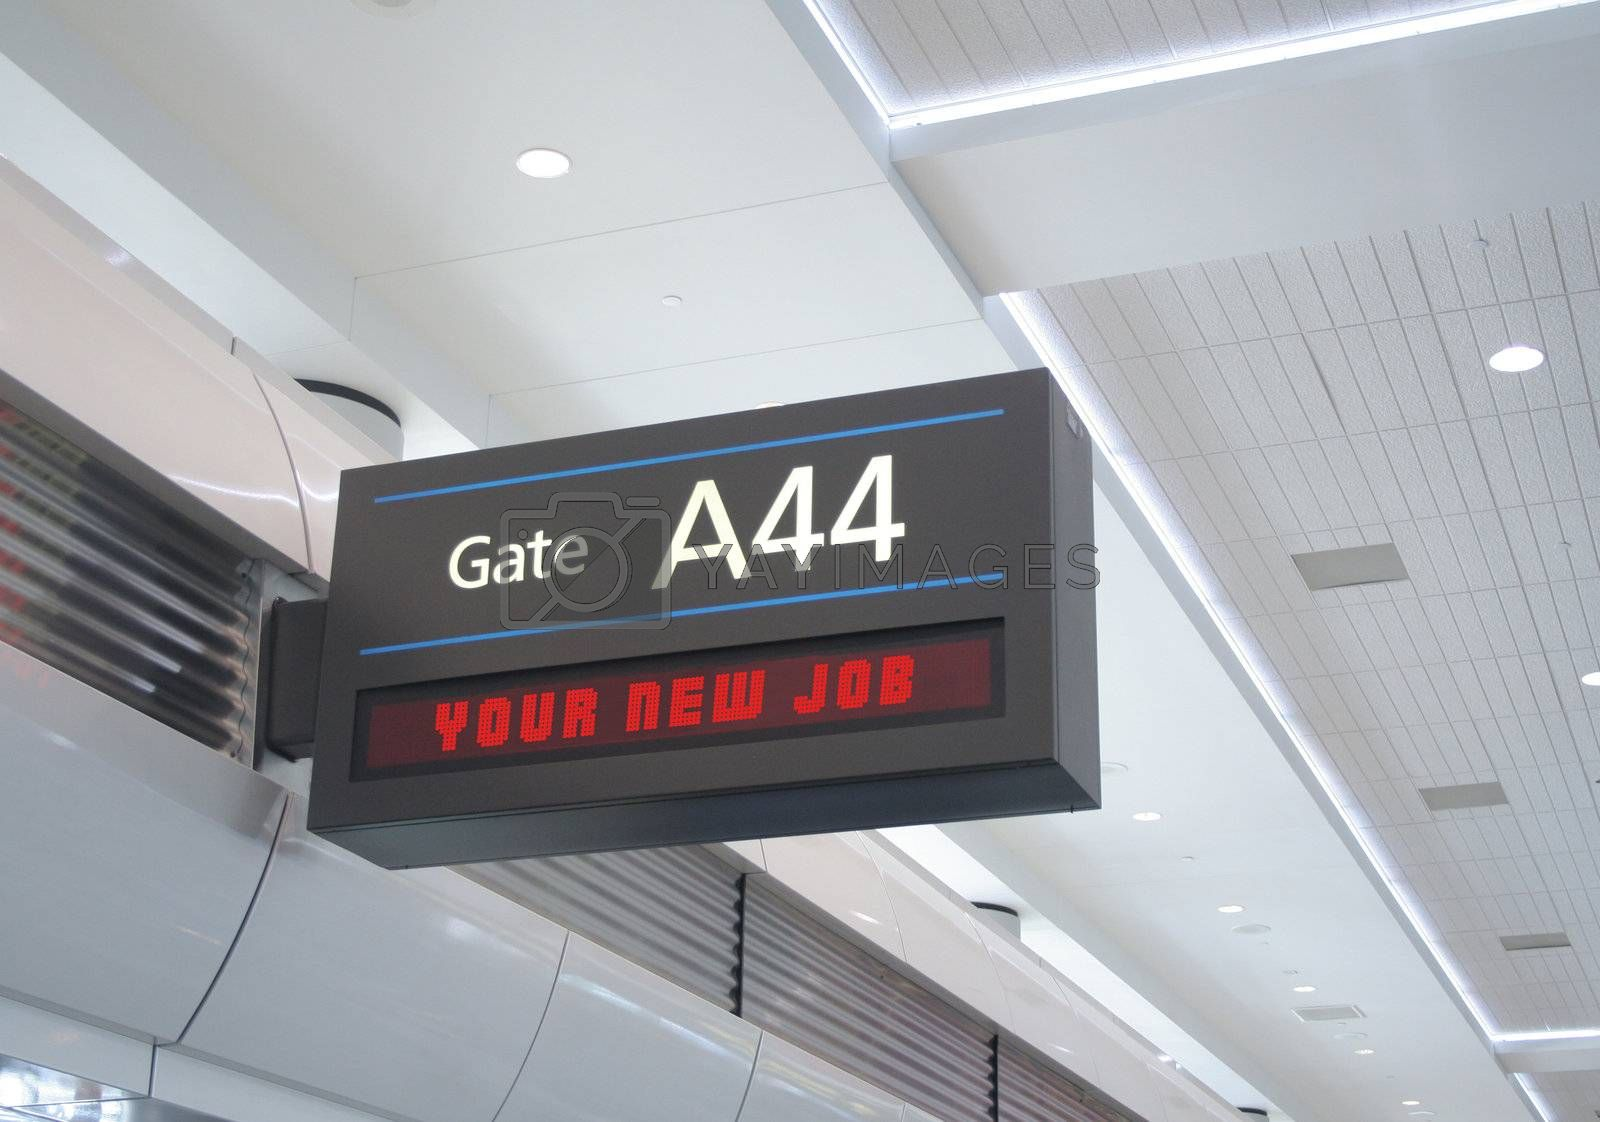 Gate sign with destination read out